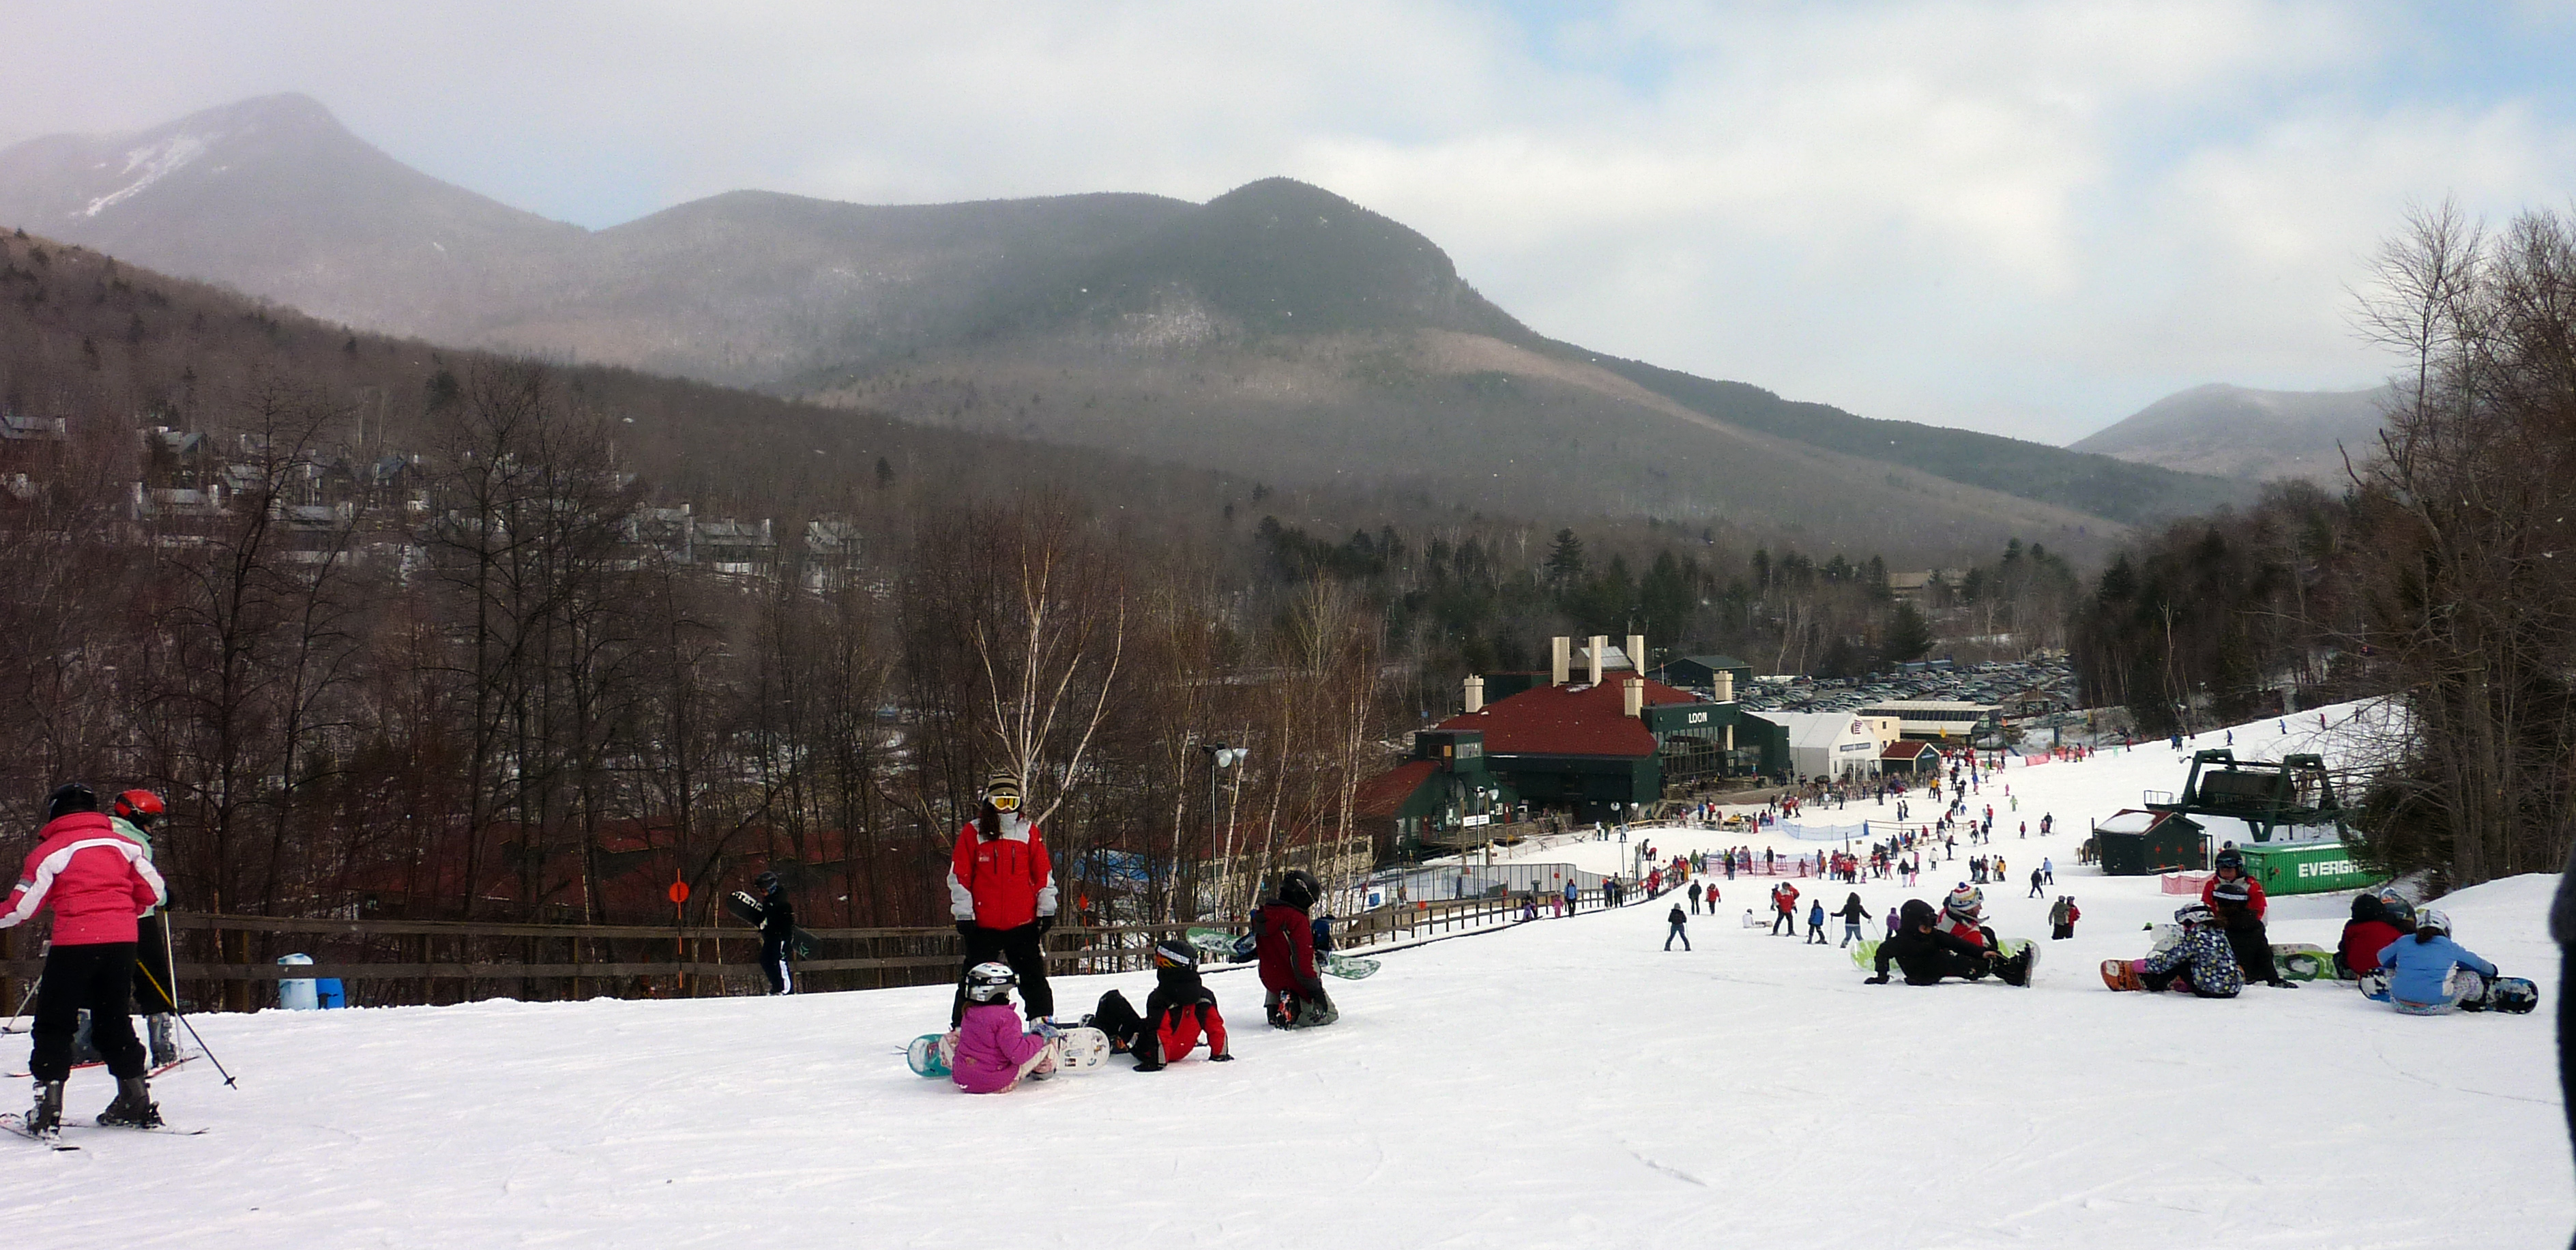 loon mountain ski resort - wikiwand